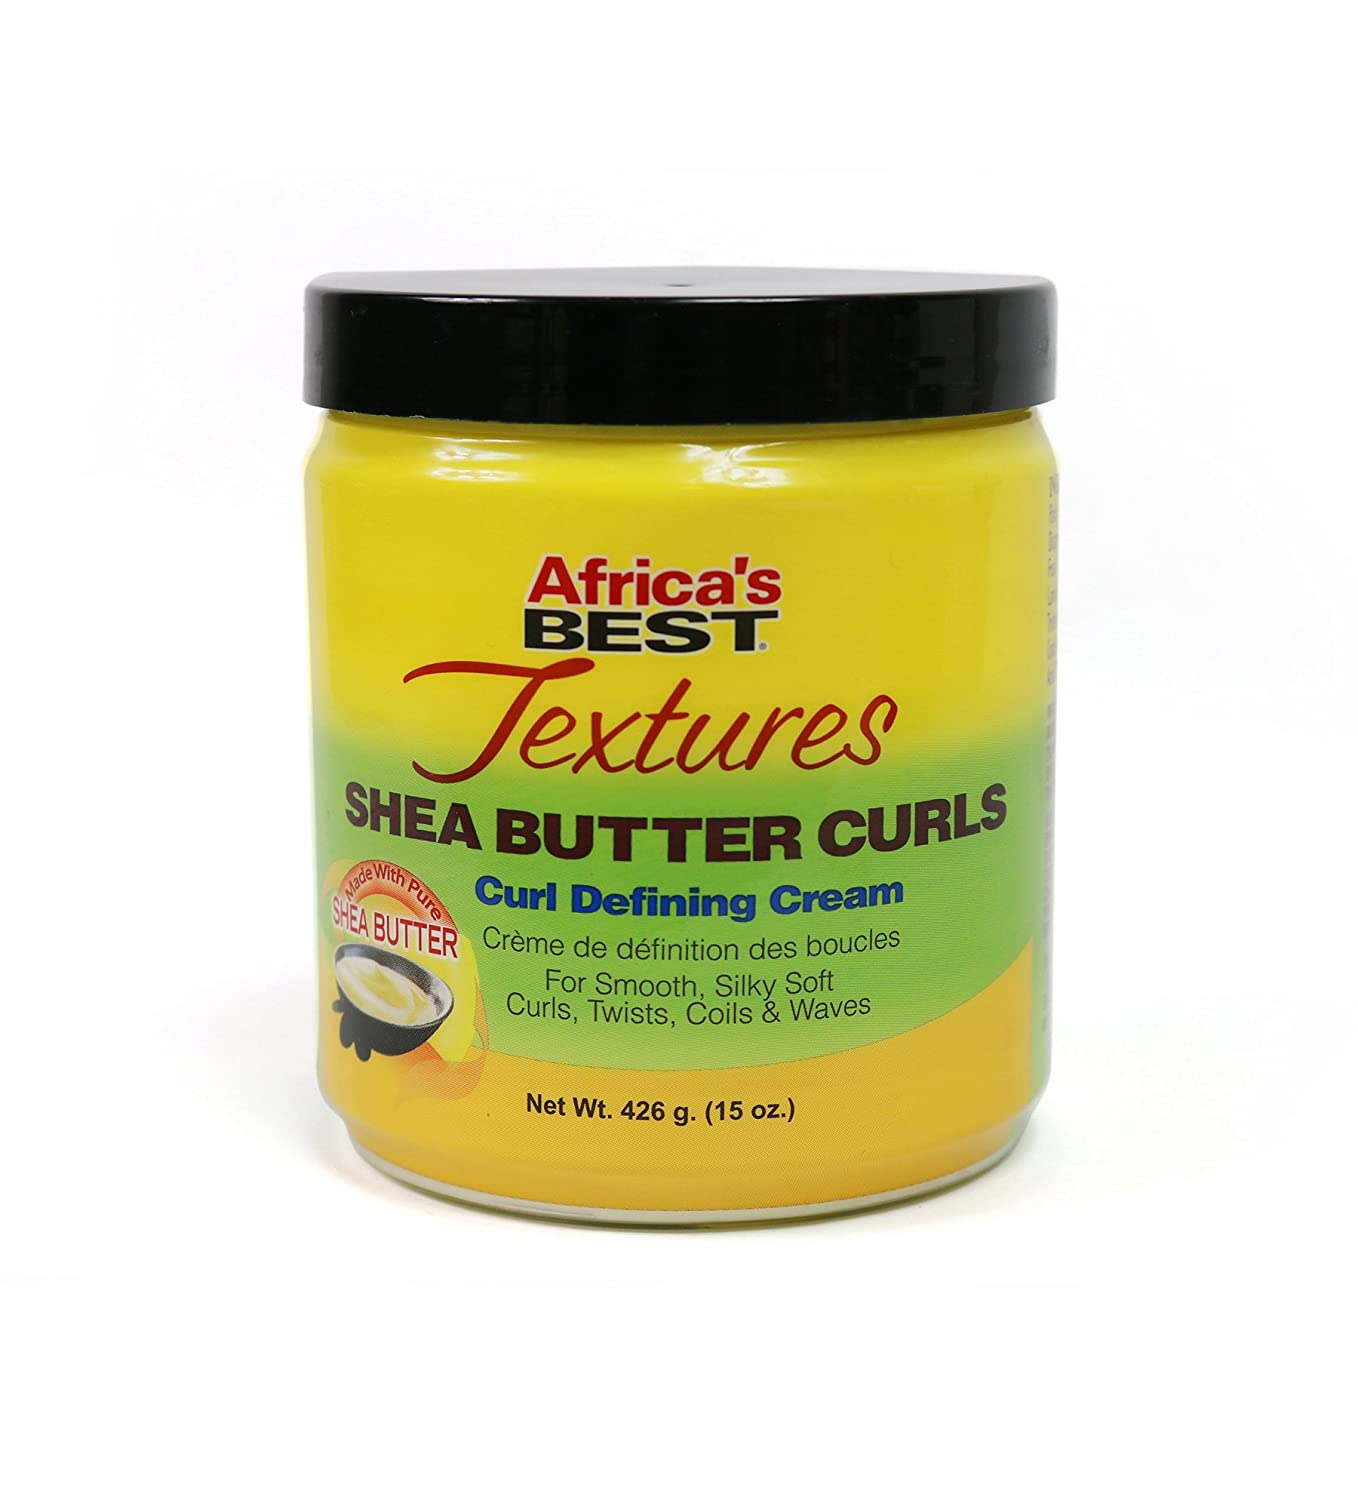 Africa's Best Textures Shea Butter Hair Curl Defining Crème, Reduces Frizzing, Seals and Repairs Hairs Split Ends, 15 Ounce Jar Atlas Ethnic